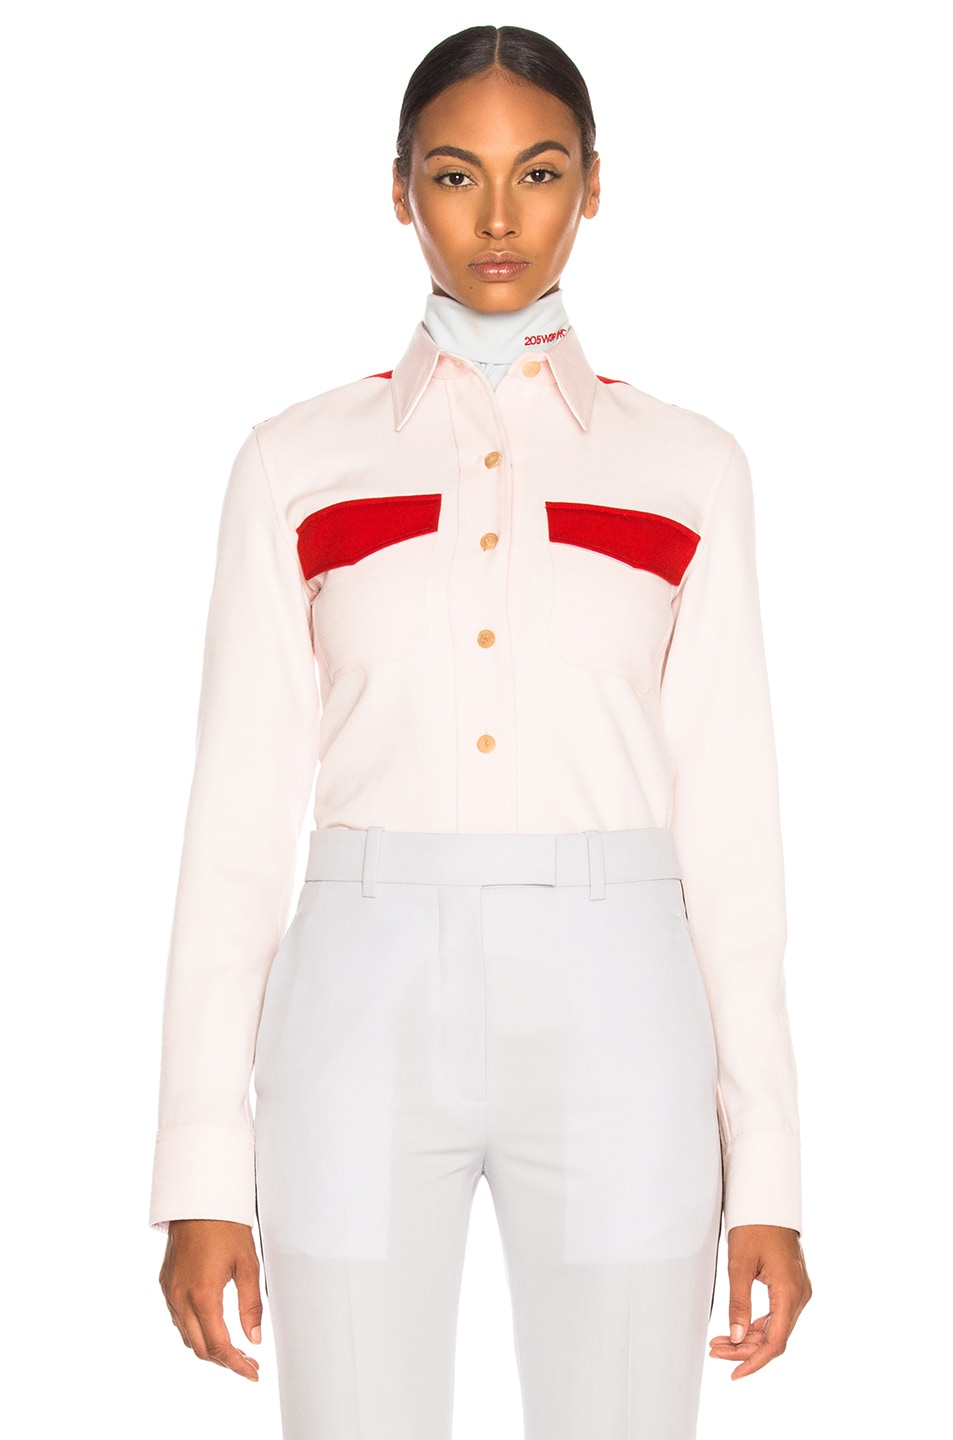 Image 1 of CALVIN KLEIN 205W39NYC Wool Twill Colorblocked Shirt in Pale Pink & Crimson